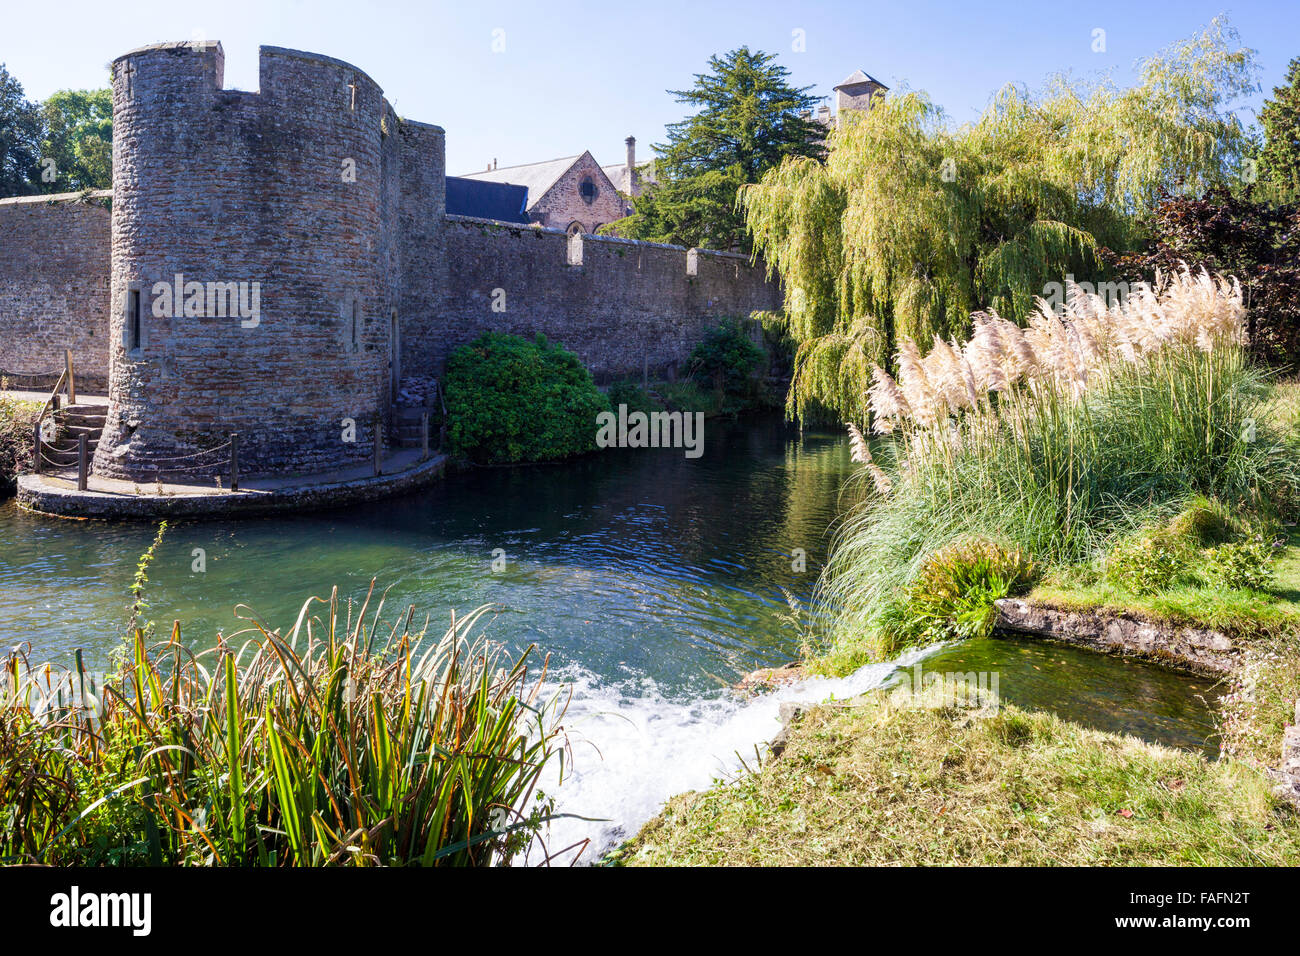 Water from the springs flowing into the moat surrounding the Bishops Palace in the cathedral city of Wells, Somerset - Stock Image